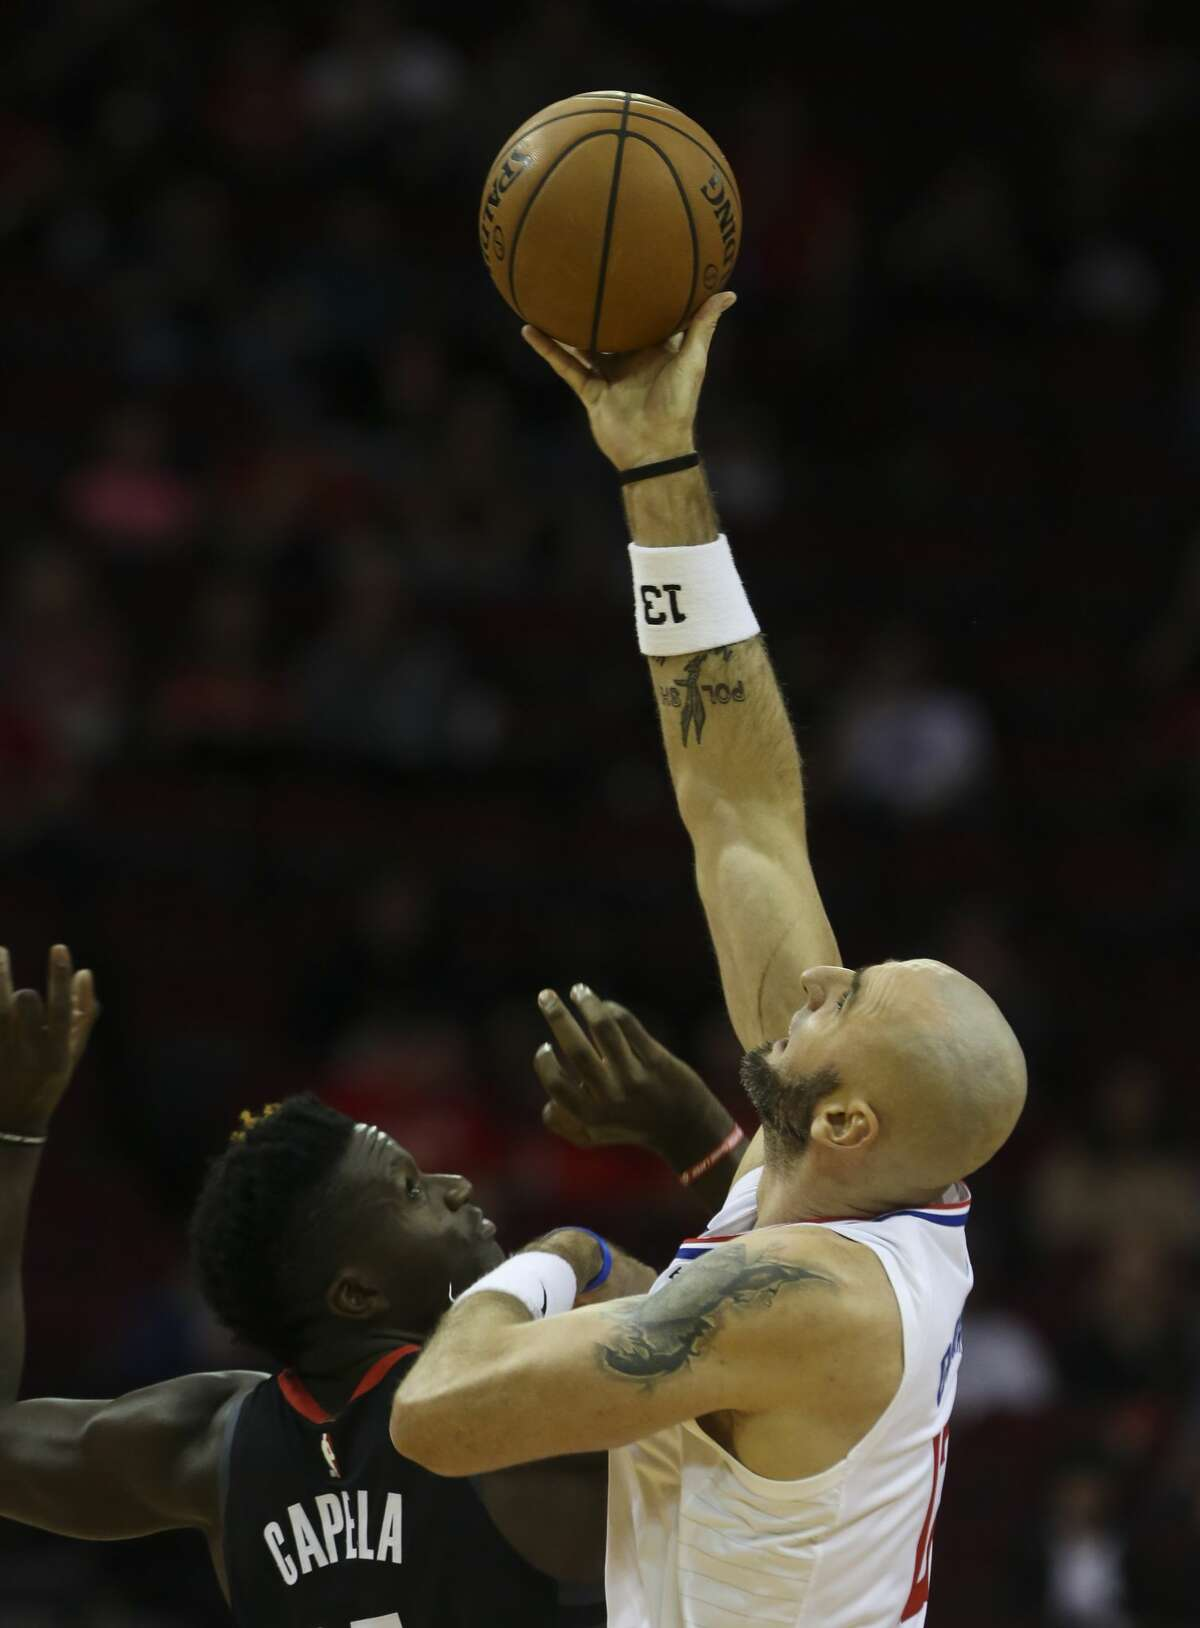 LA Clippers center Marcin Gortat (13) wins the jump up against Houston Rockets center Clint Capela (15) at the opening of the NBA game at Toyota Center on Friday, Oct. 26, 2018, in Houston.